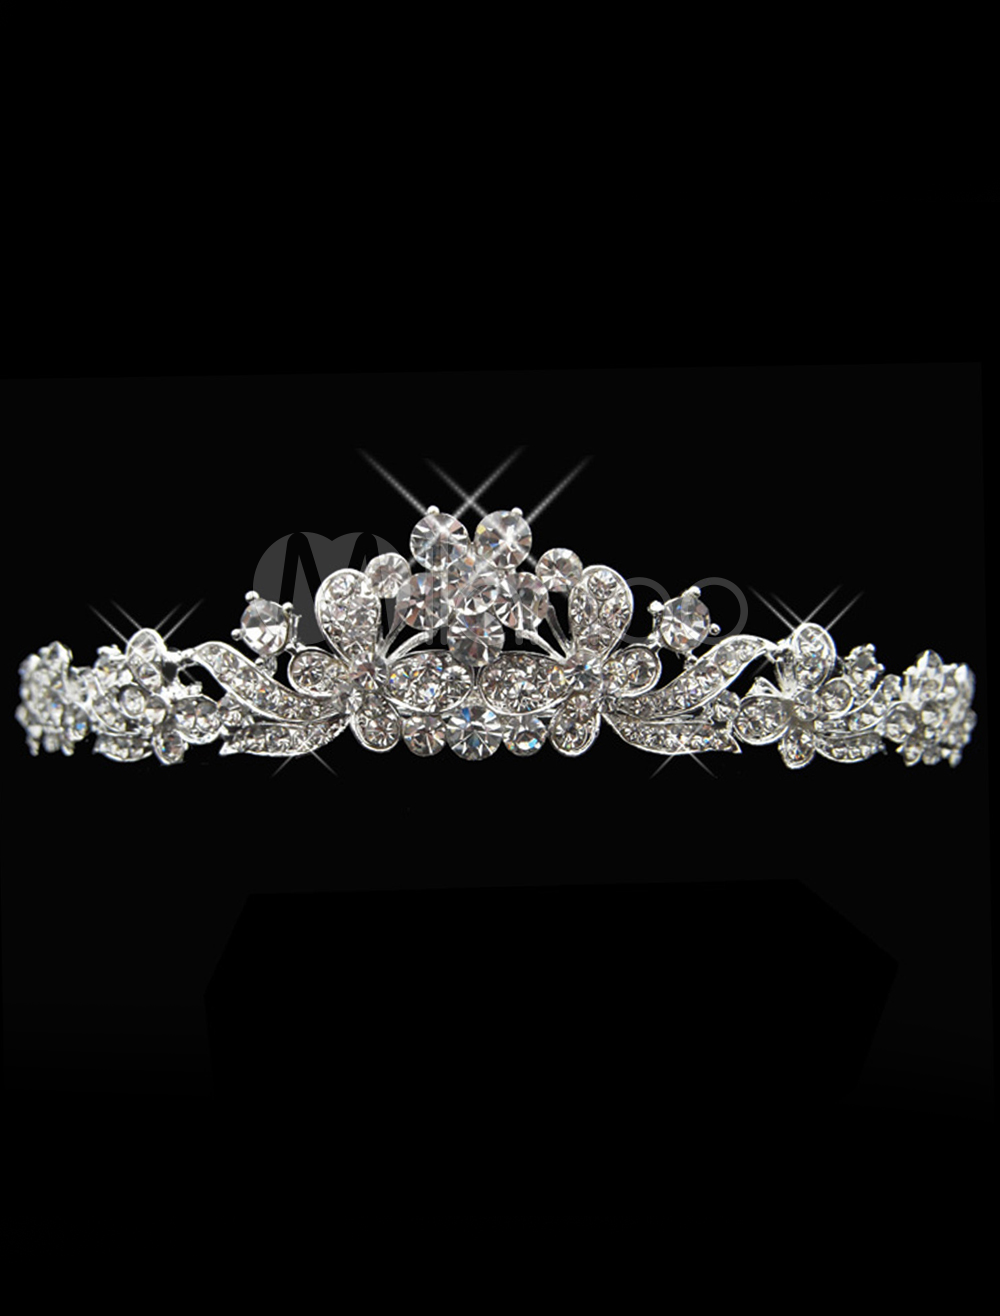 Flowers and Butterfly Silver Rhinestone Metal Bridal Tiara